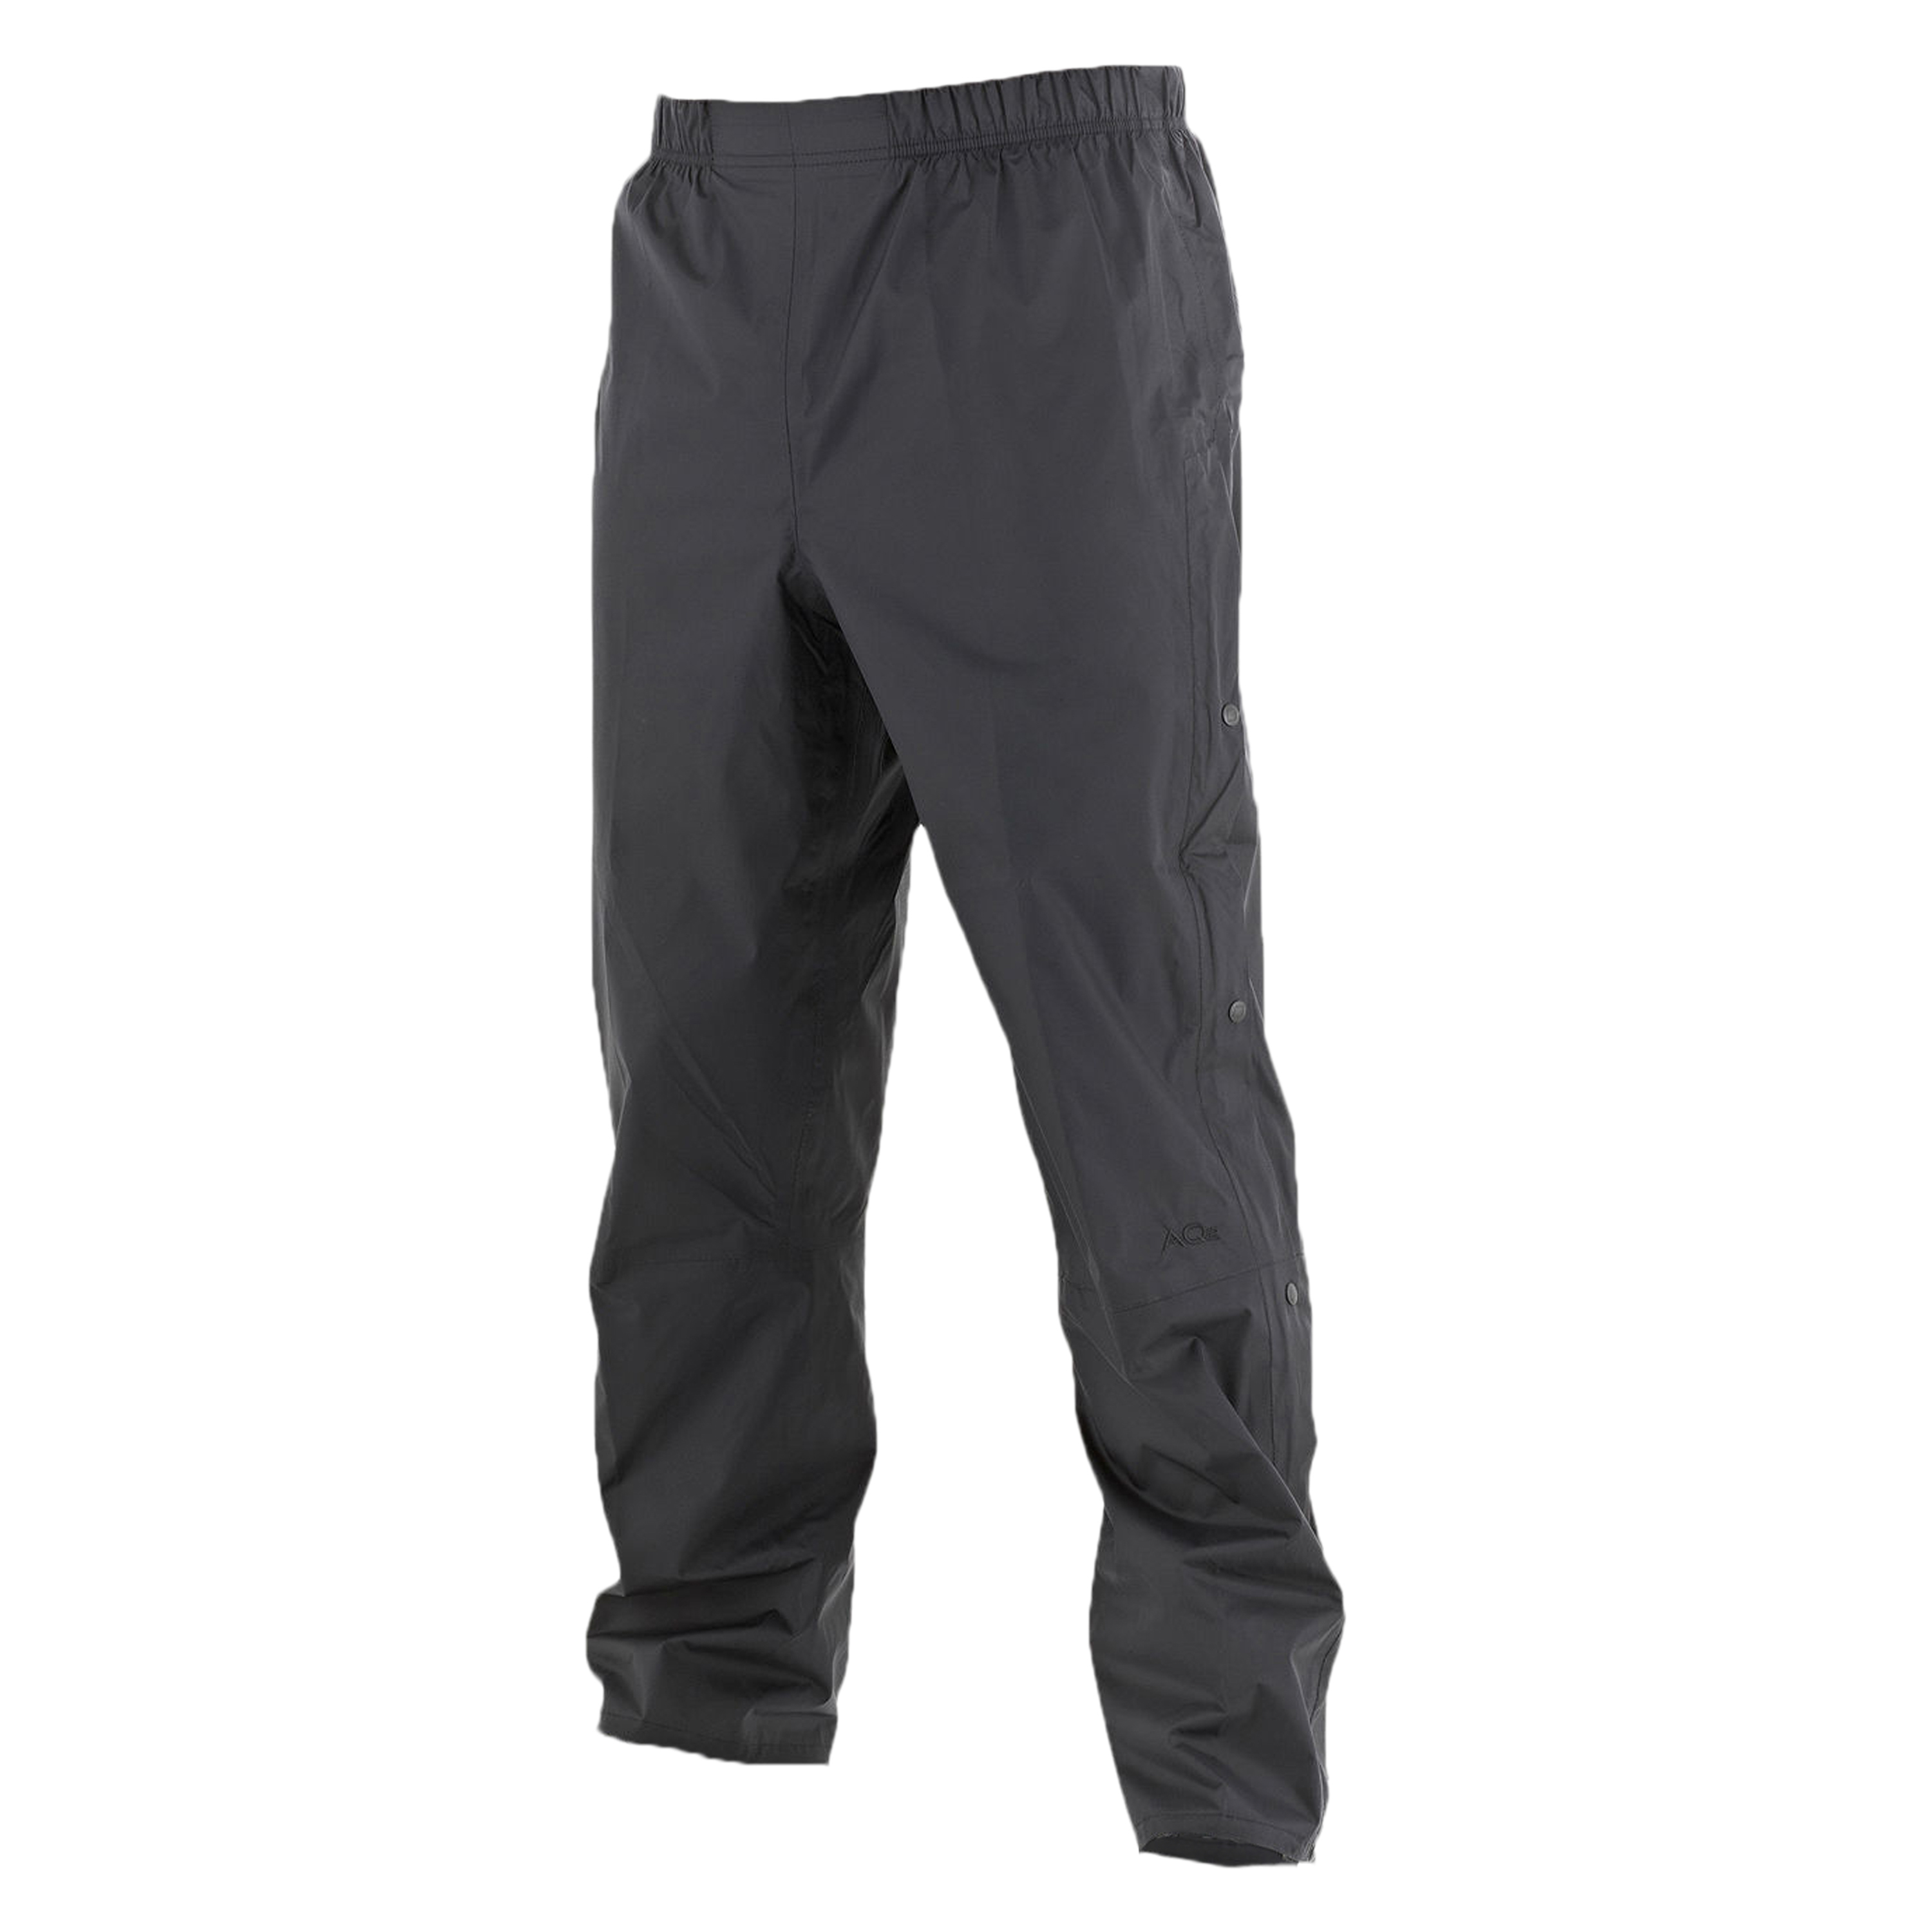 Berghaus Hose Deluge Overtrousers schwarz Länge 33